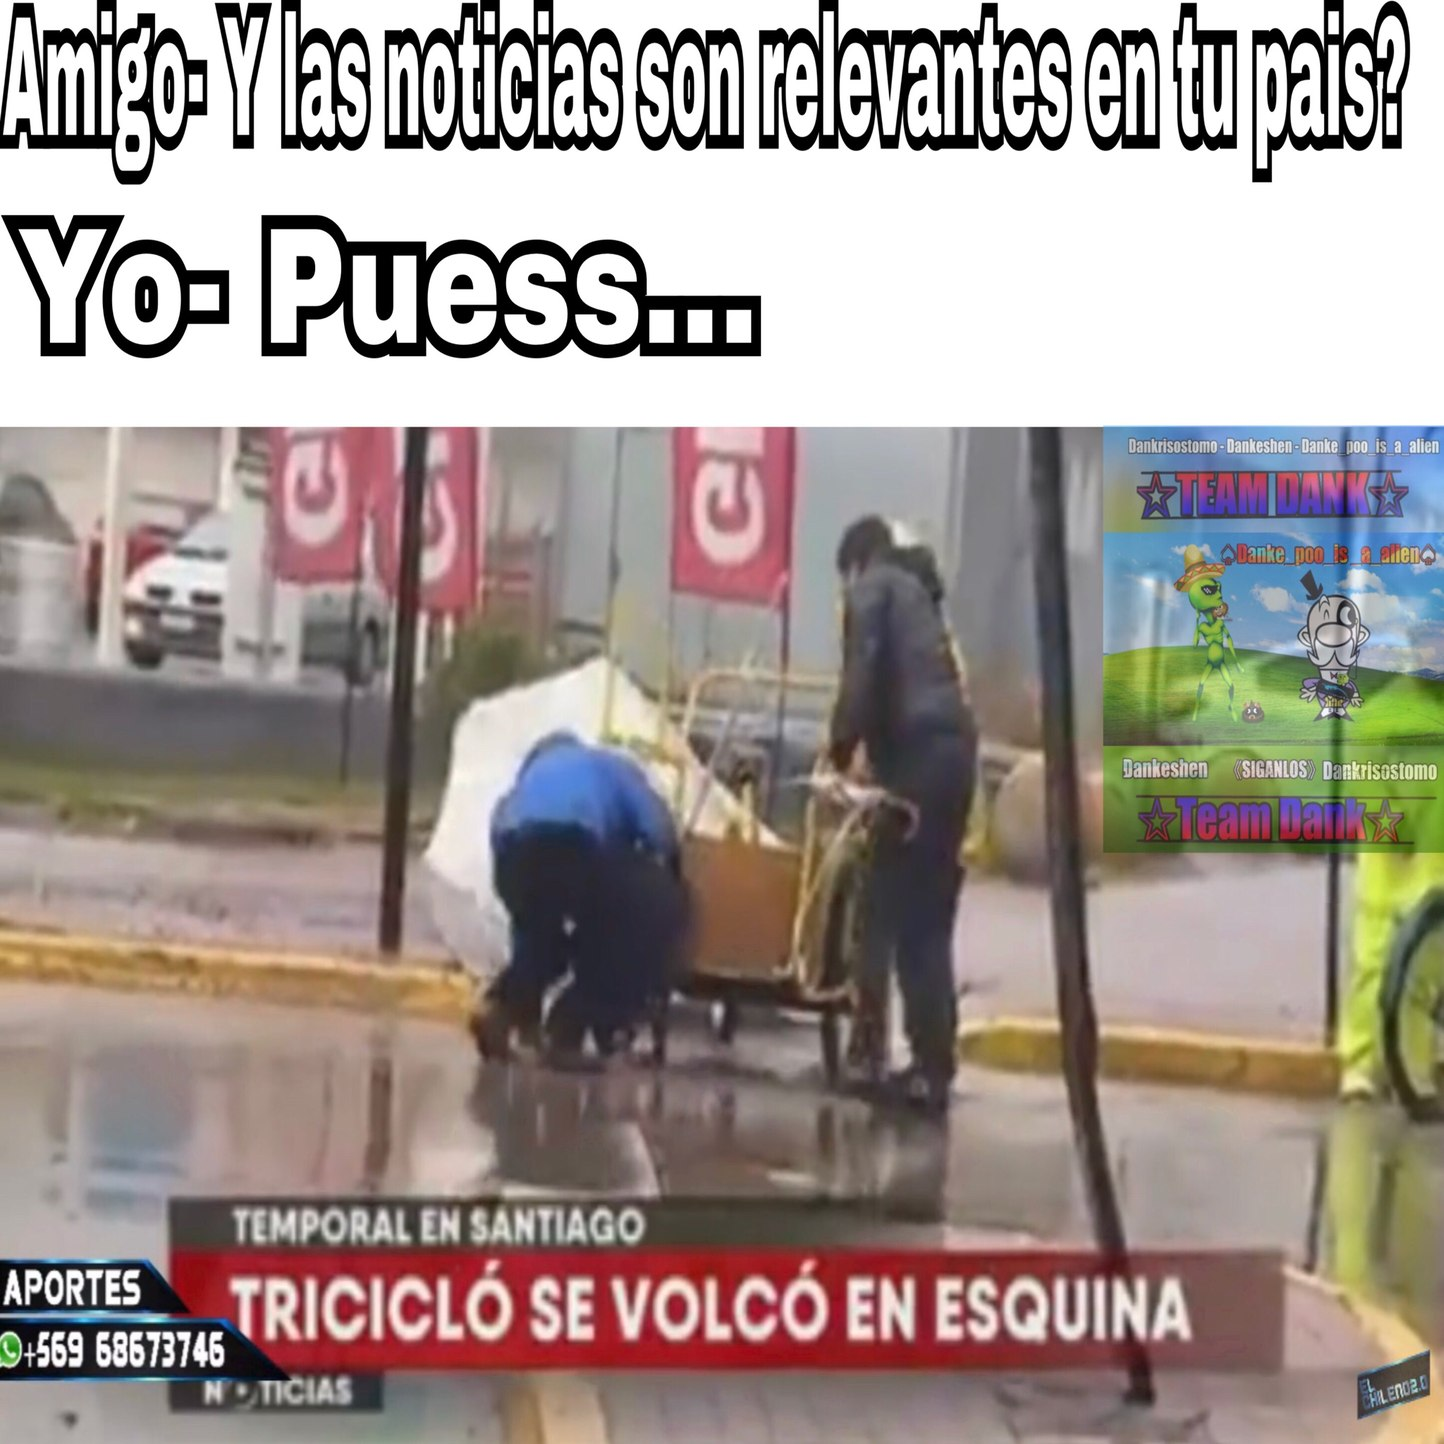 Si... es una noticia real - meme